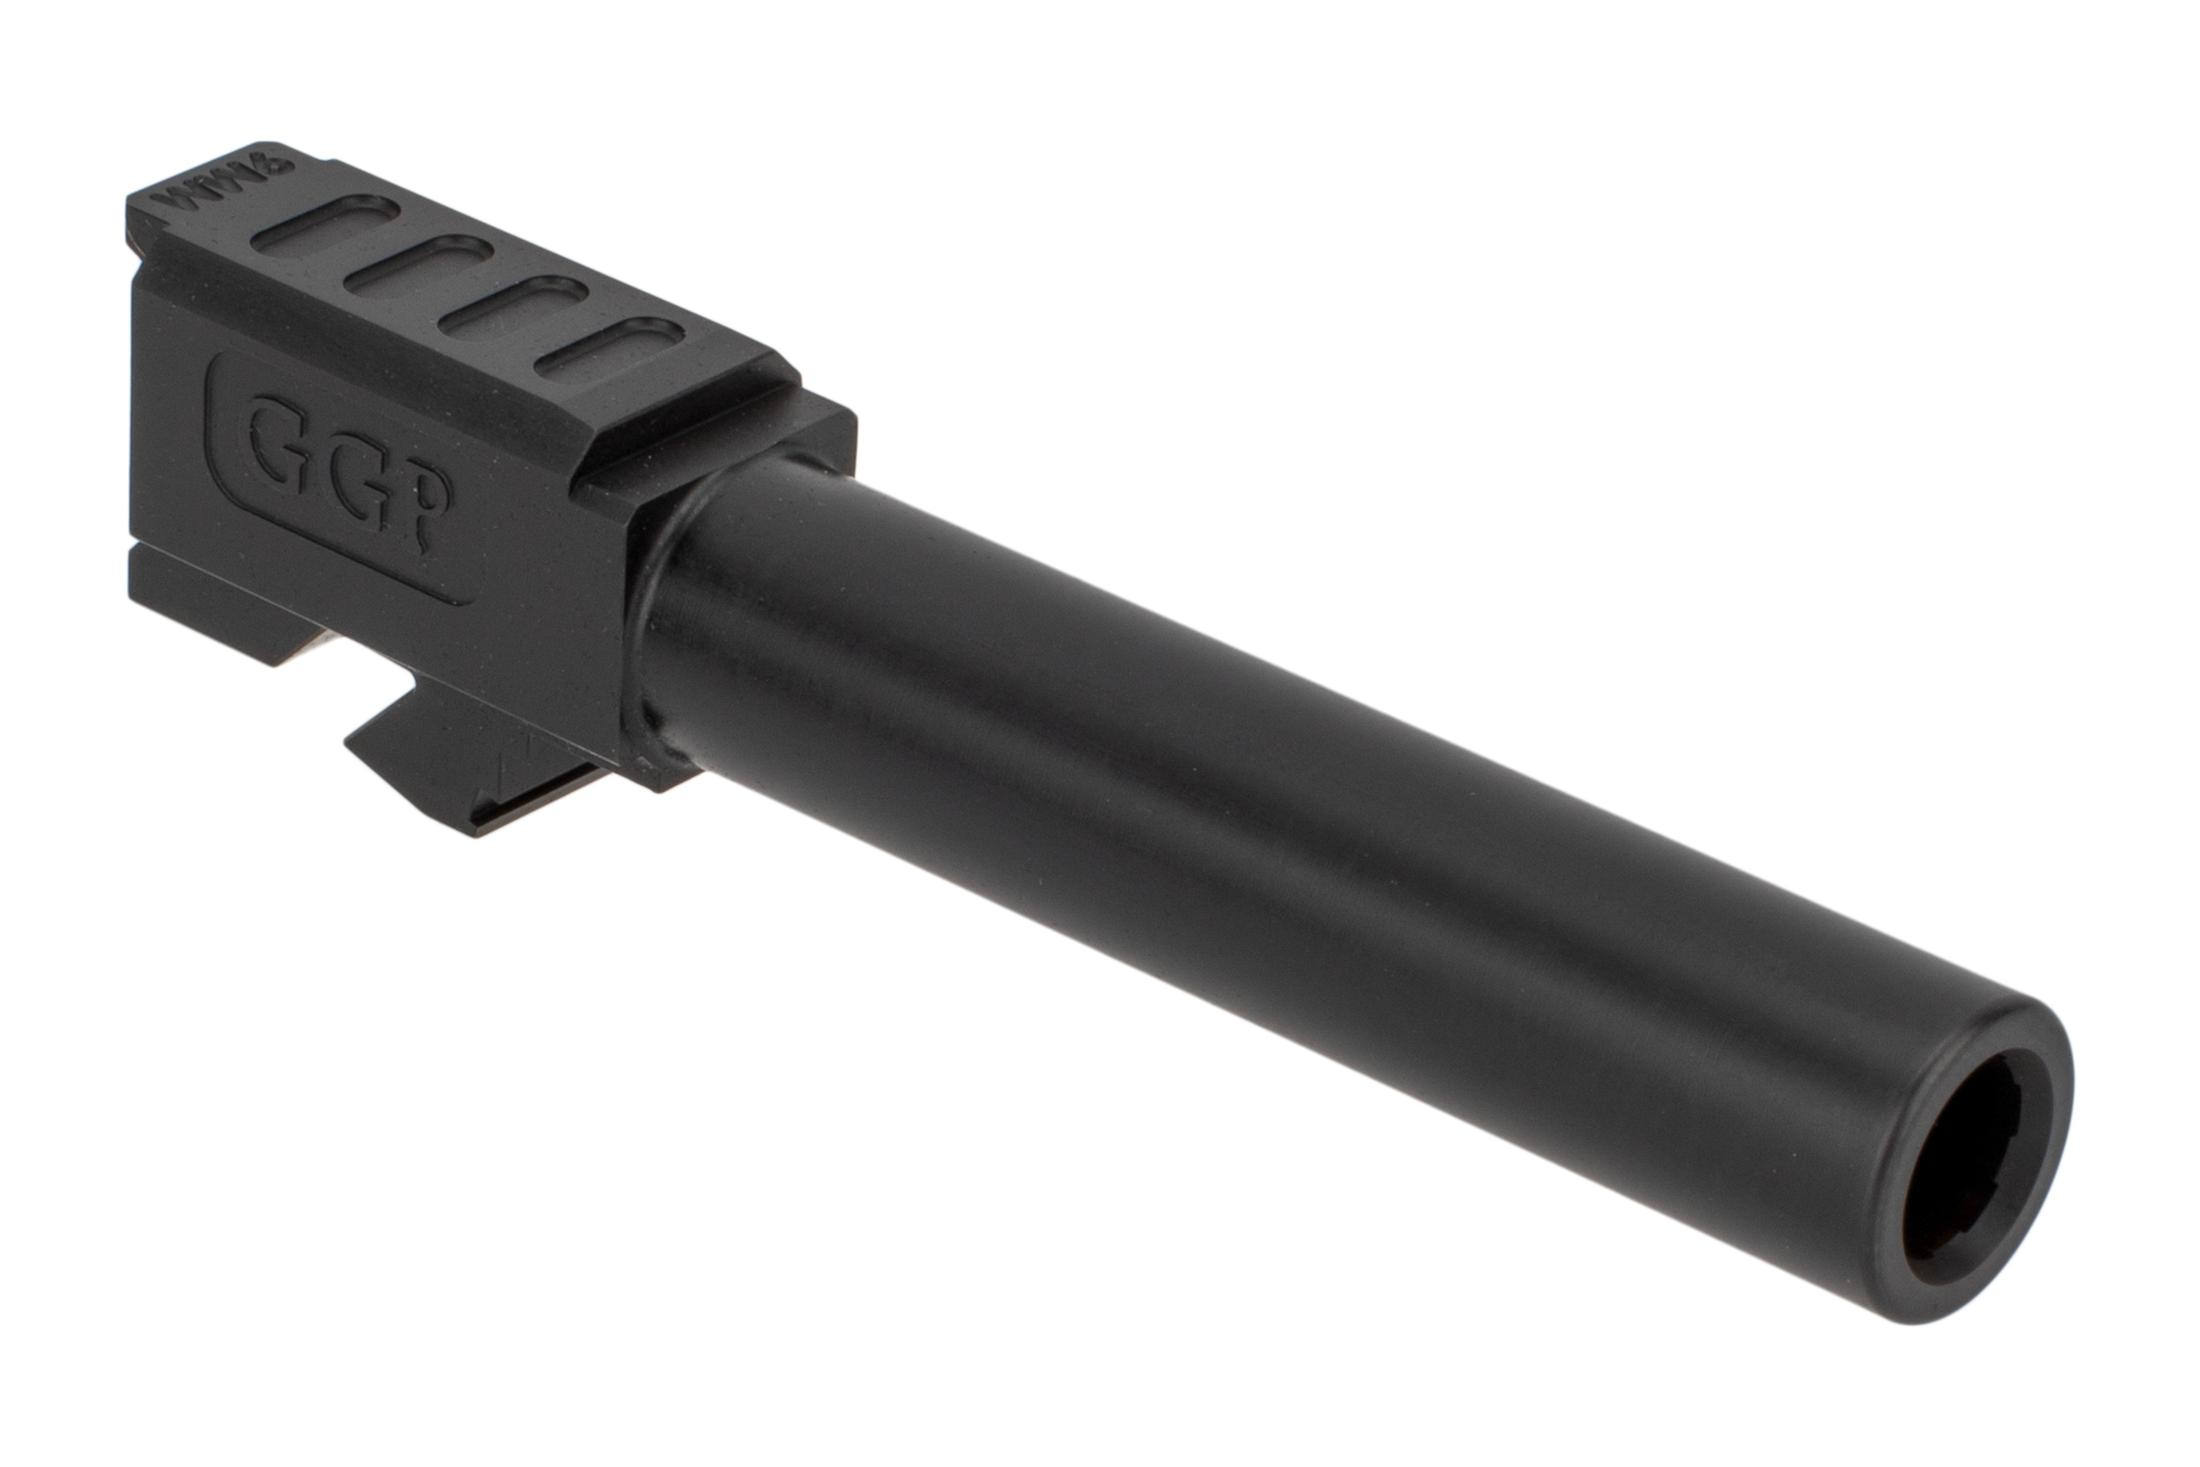 Grey Ghost Precision match grade 416R stainless barrel for Gen 3/4 Glock 19 handguns with slick nitride finish